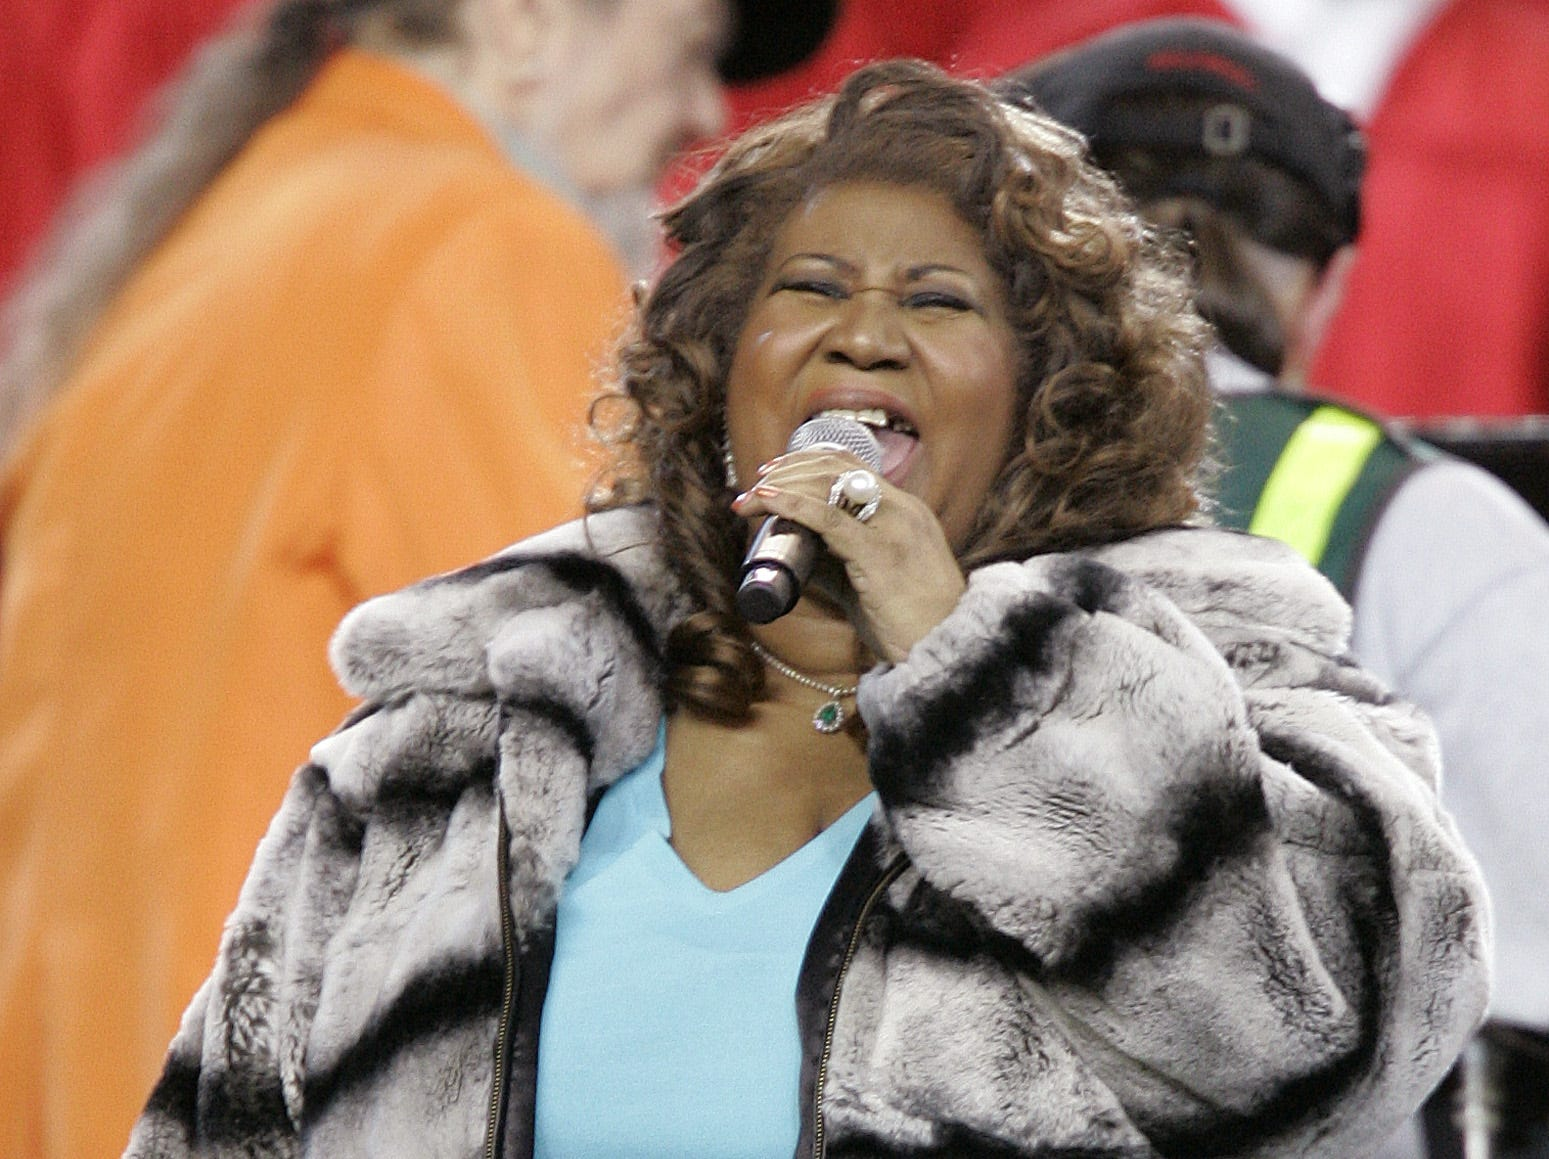 Singer Aretha Franklin performs the national anthem before the Super Bowl XL football game Sunday, Feb. 5, 2006, in Detroit. (AP Photo/Michael Conroy)